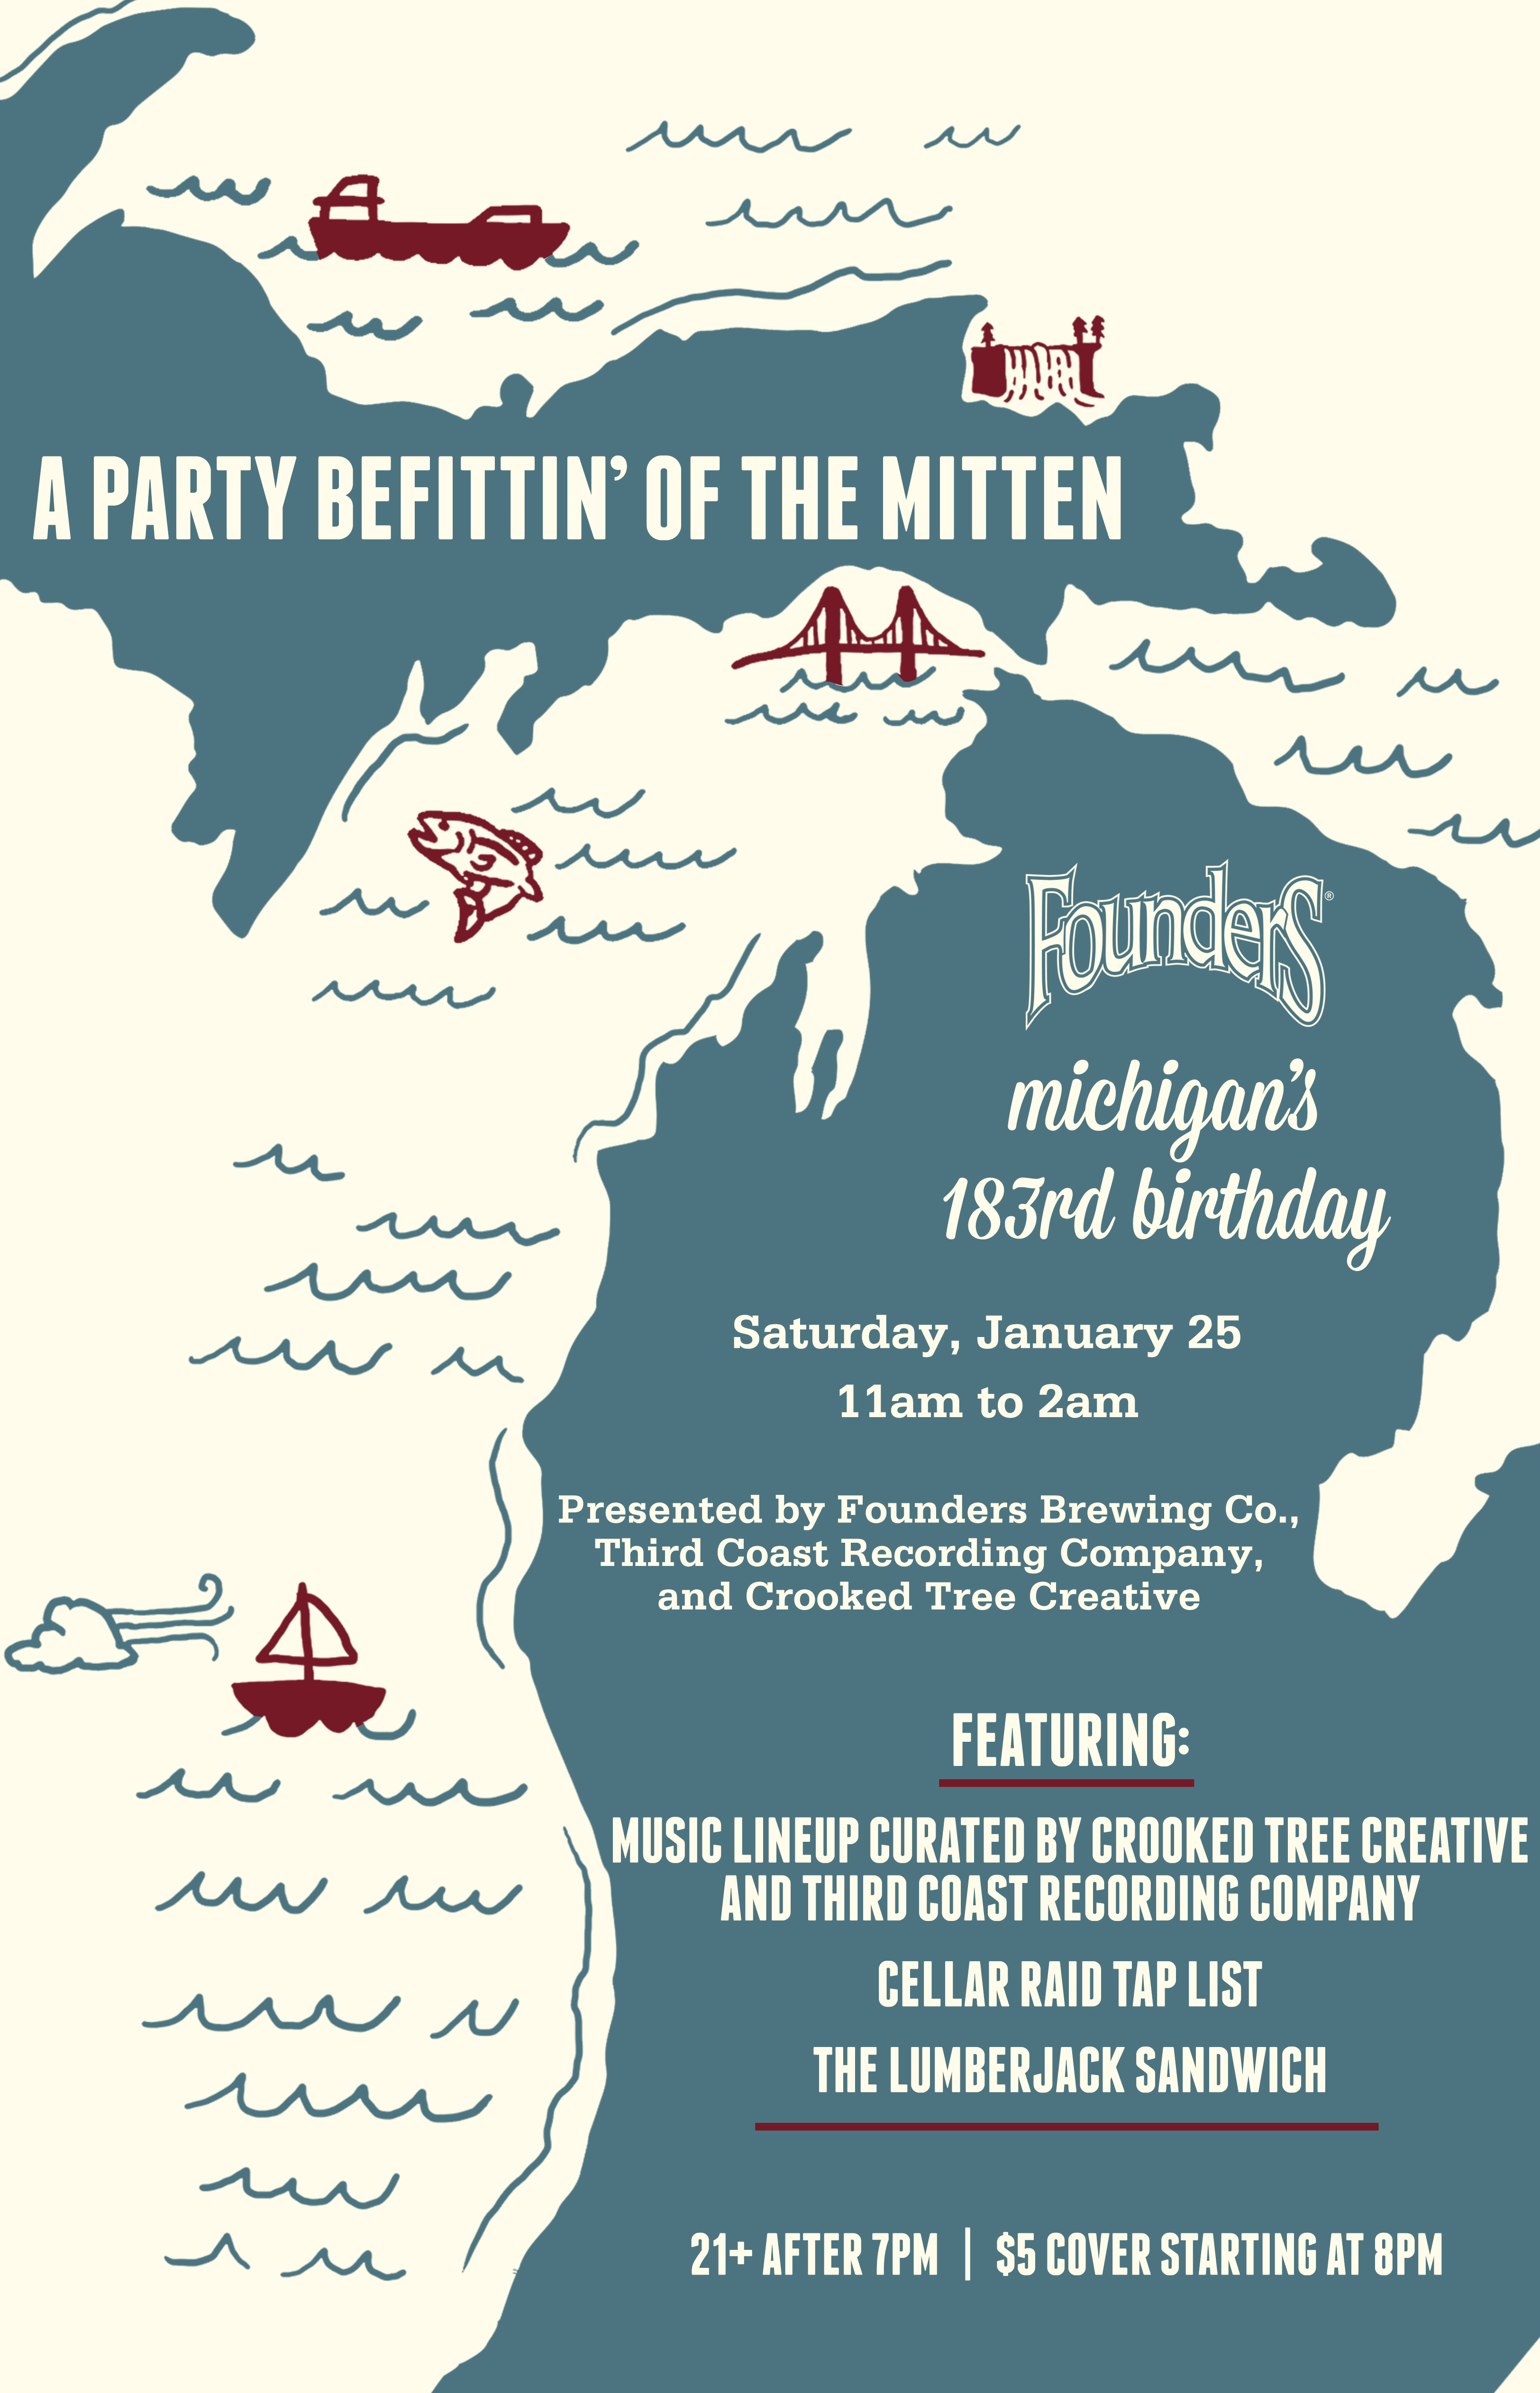 Michigan's 183rd Birthday event poster hosted by Founders Brewing Co.